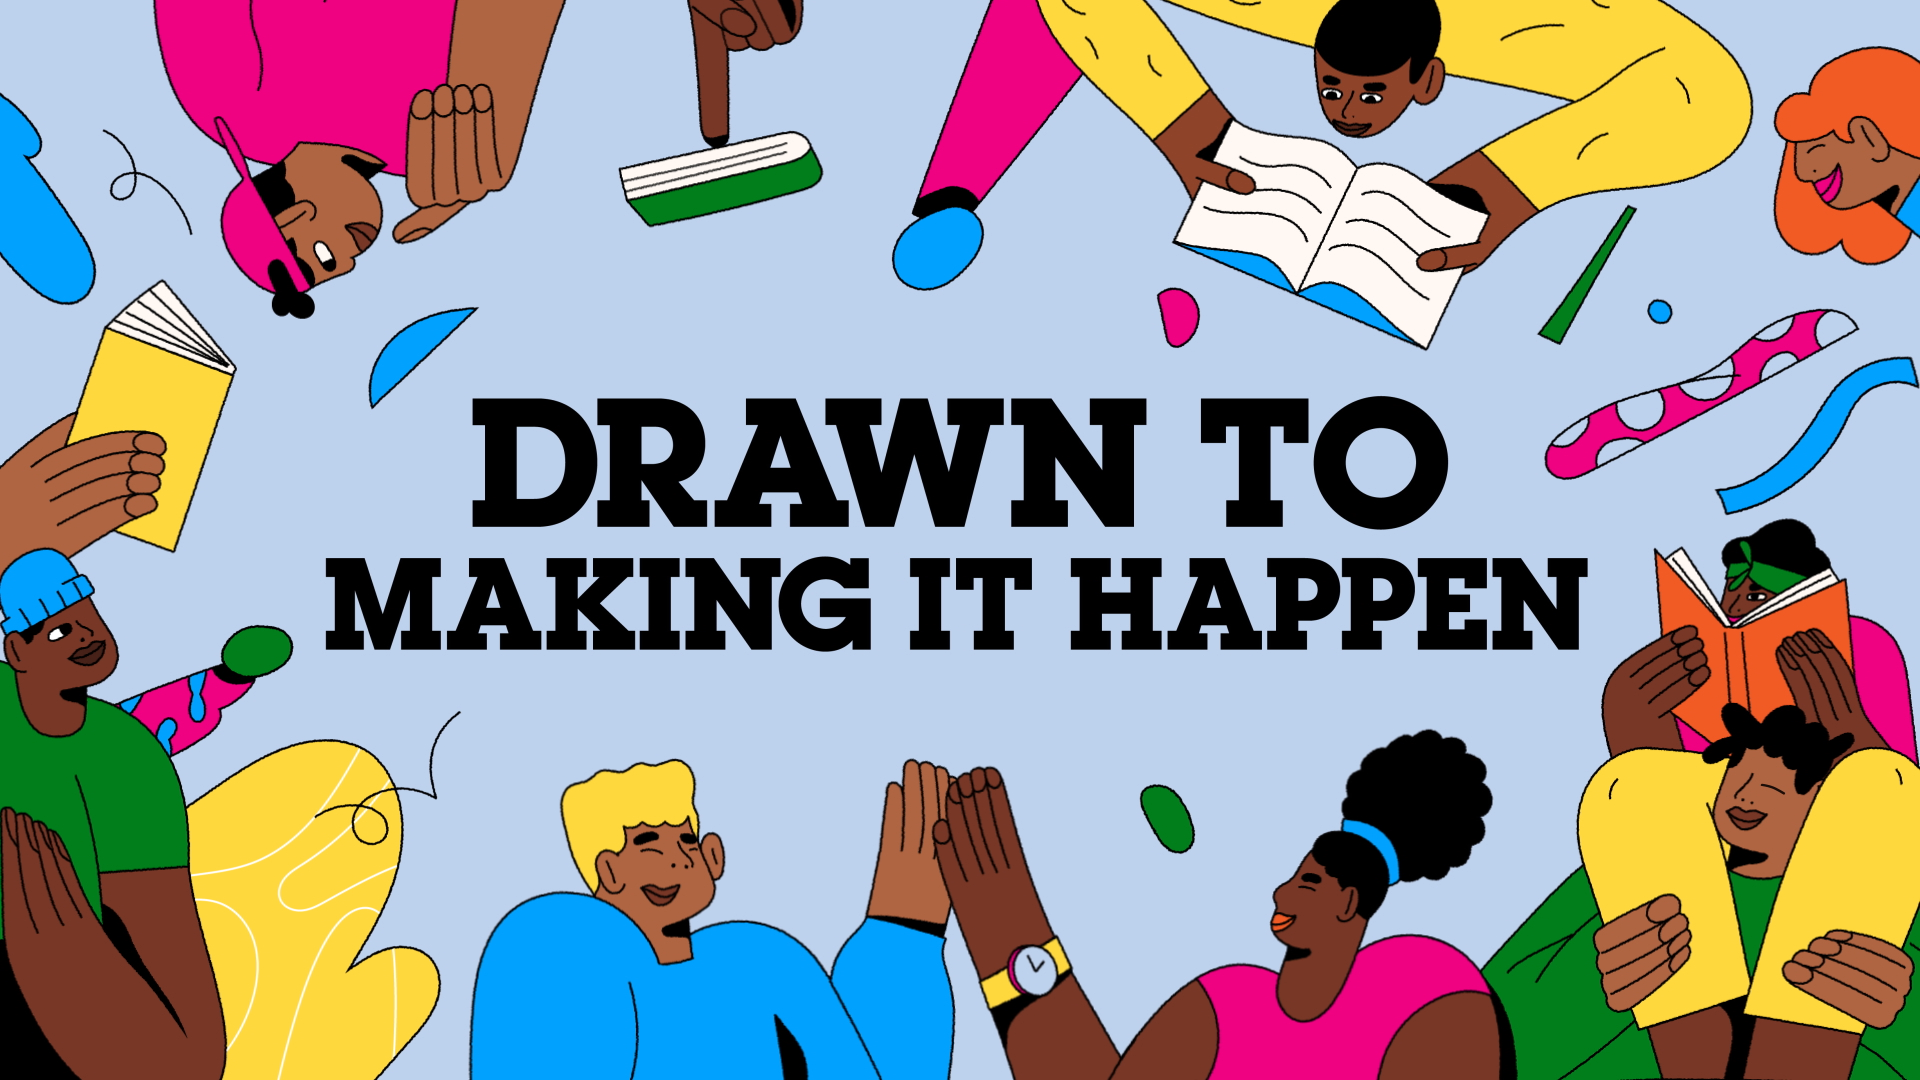 Drawn To Making It Happen Graphic Image